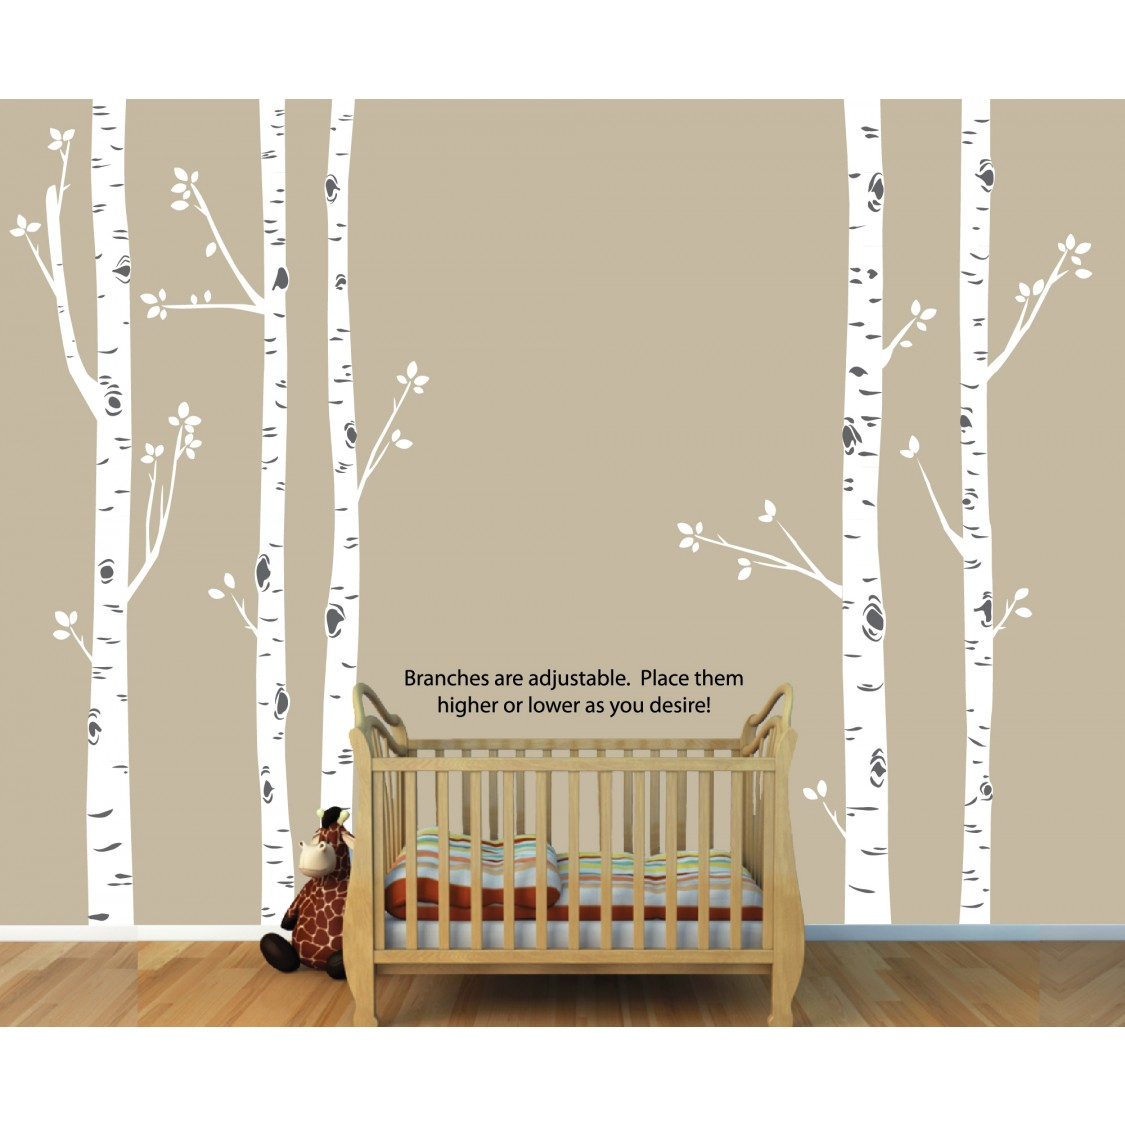 Tree wall decals with large tree wall sticker for play rooms birch tree wall decals with large tree wall sticker for play rooms amipublicfo Choice Image